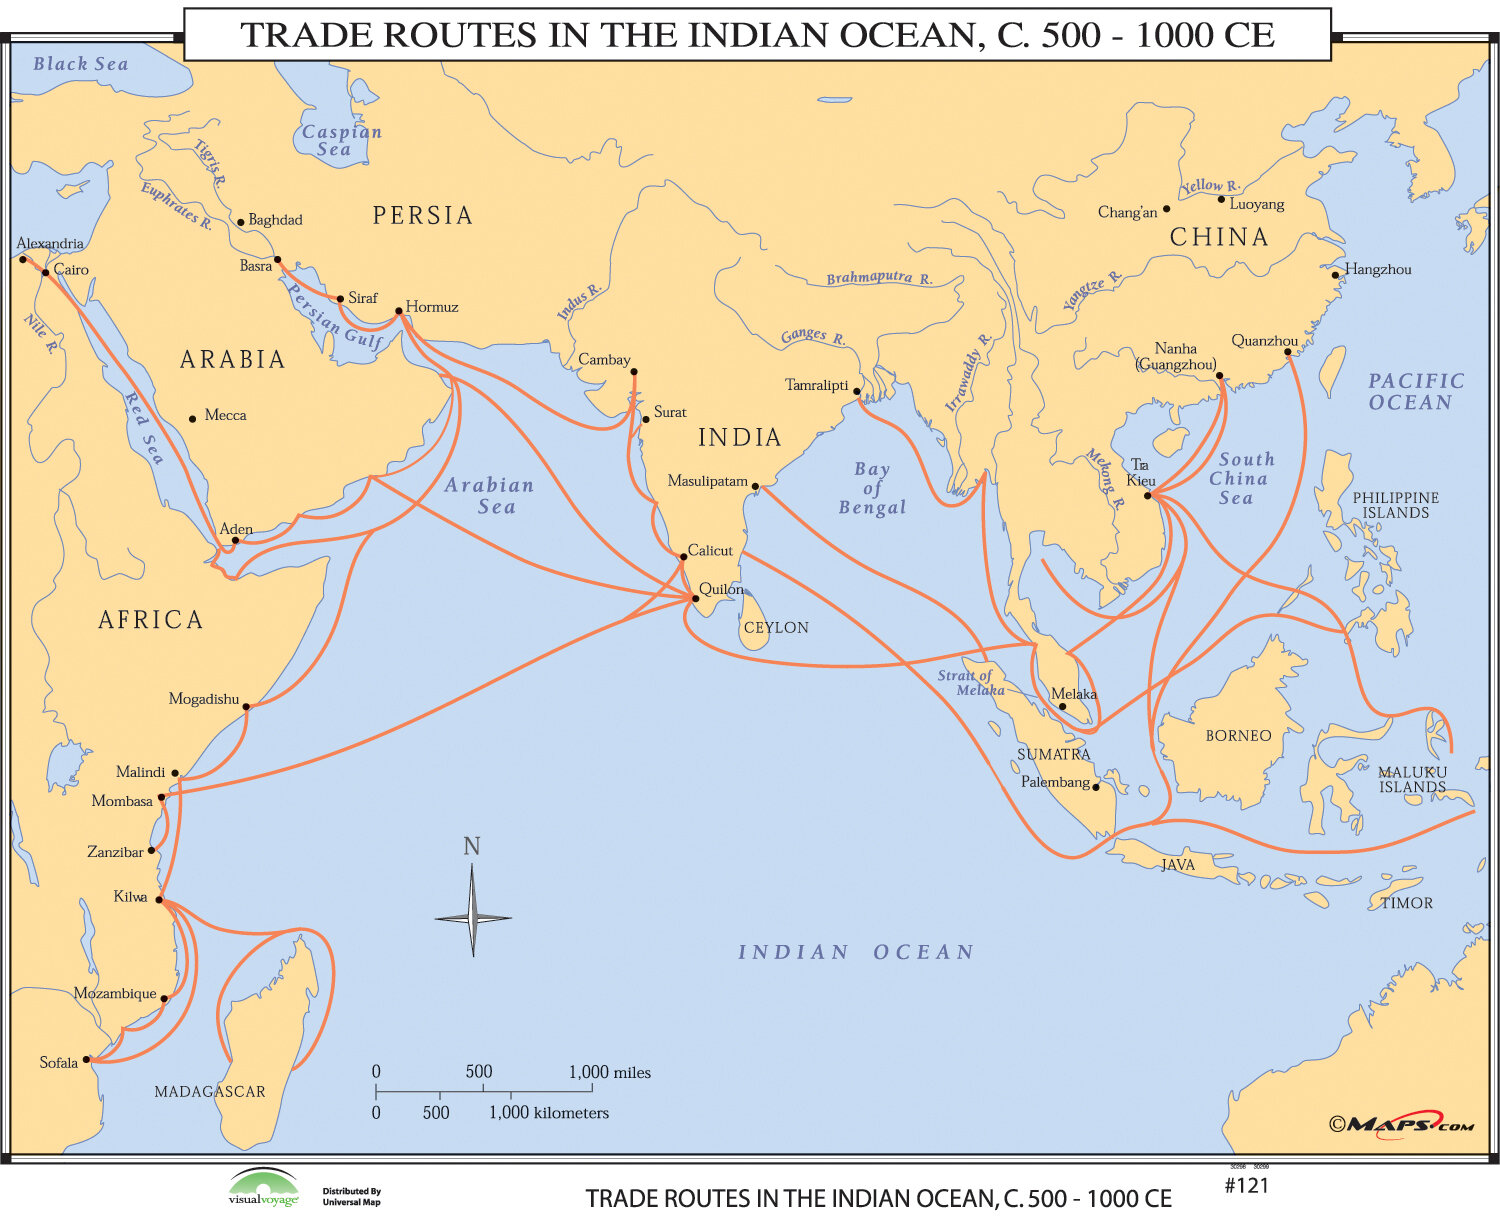 World History Wall Maps - Trade Routes in the Indian Ocean on atlantic ocean, korean peninsula map, arabian sea, comoros map, bay of bengal, world map, pacific ocean, persian gulf, silk road, india map, caspian sea, south china sea, middle east map, equator map, christmas island, ukraine map, south america map, china map, africa map, bay of bengal map, cape of good hope map, caribbean sea, mediterranean sea, iran map, pacific map, arctic ocean, australia map, black sea, south asia, java map, latin america map, persian gulf map, arabian sea map, southern ocean, world ocean, asia map, red sea,